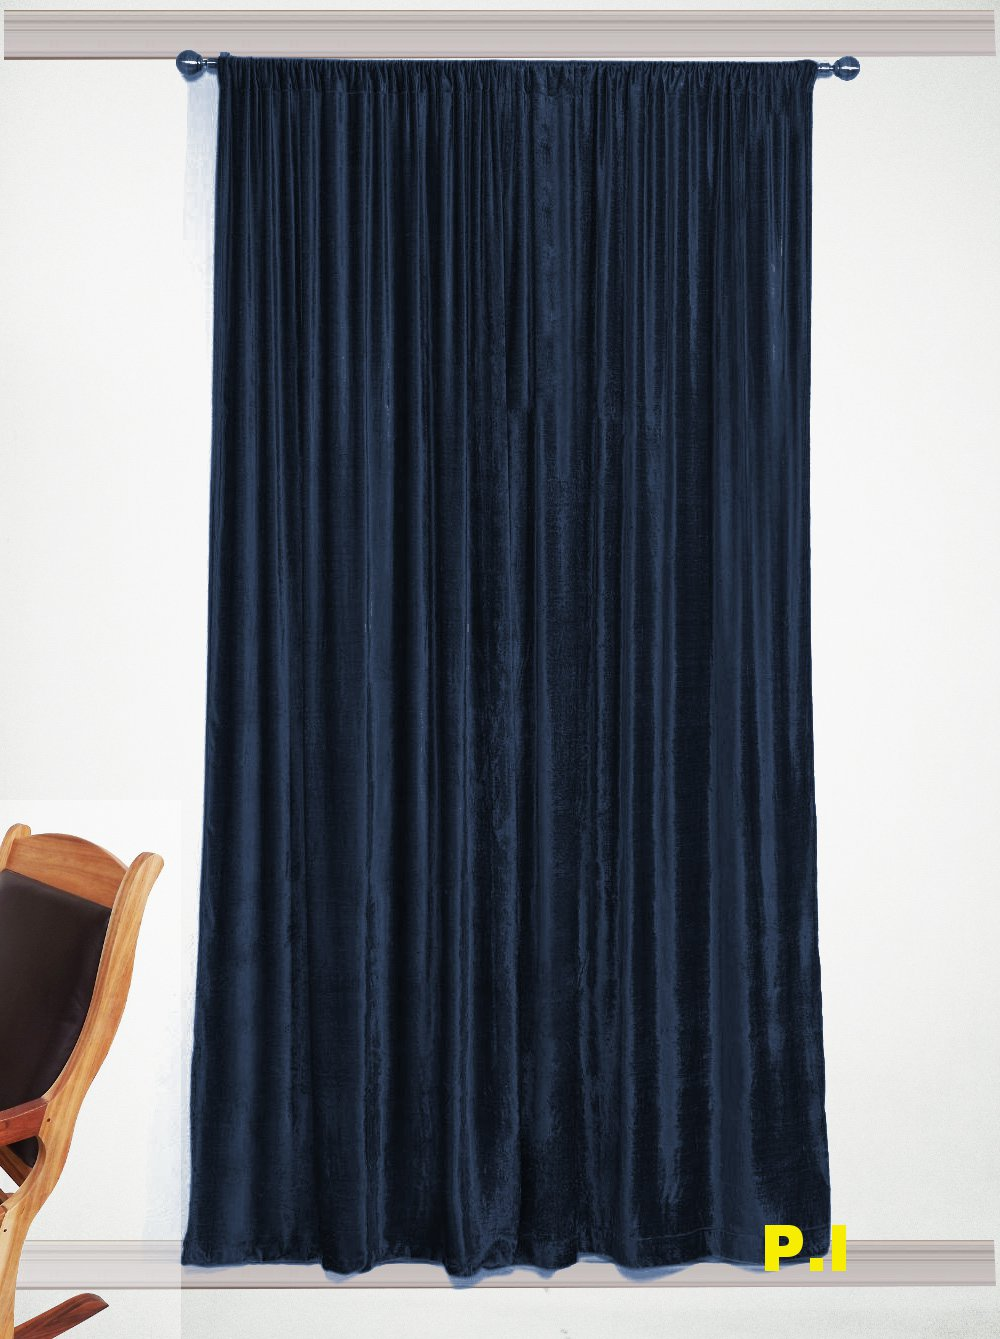 "New Blackout 100% Cotton Velvet Curtain Single Lined Panel 54""W by 108""H -Navy Blue"